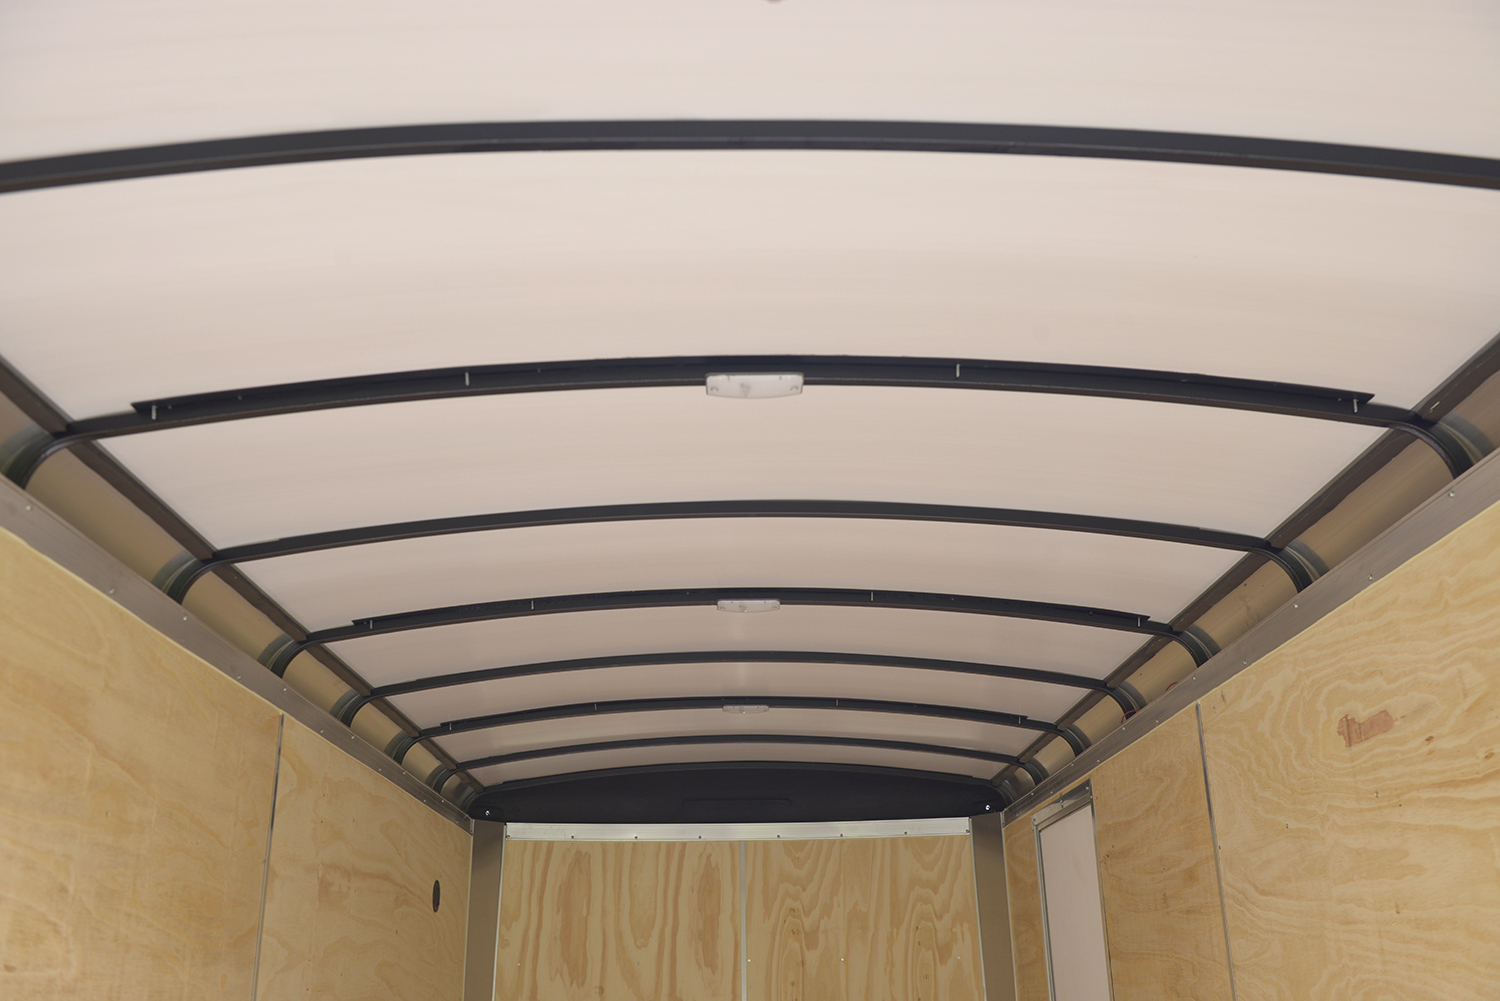 Silver Thermo-Sheath Ceiling